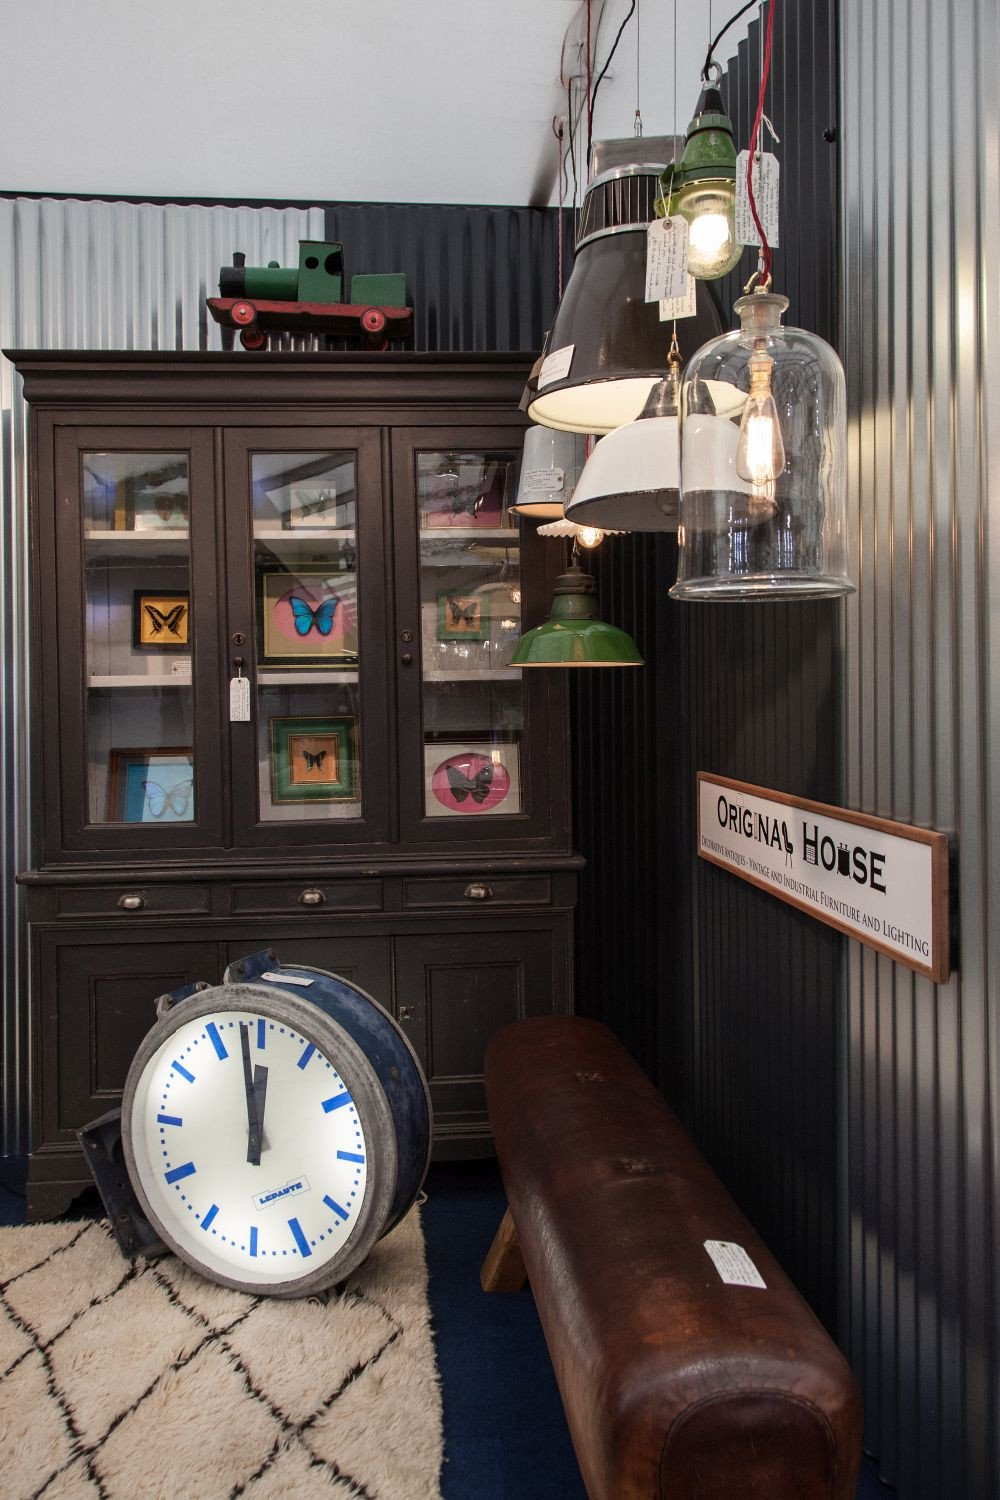 Man Cave Bedroom Ideas New Elements to Make Your Man Cave Decor More Stylish and Fun